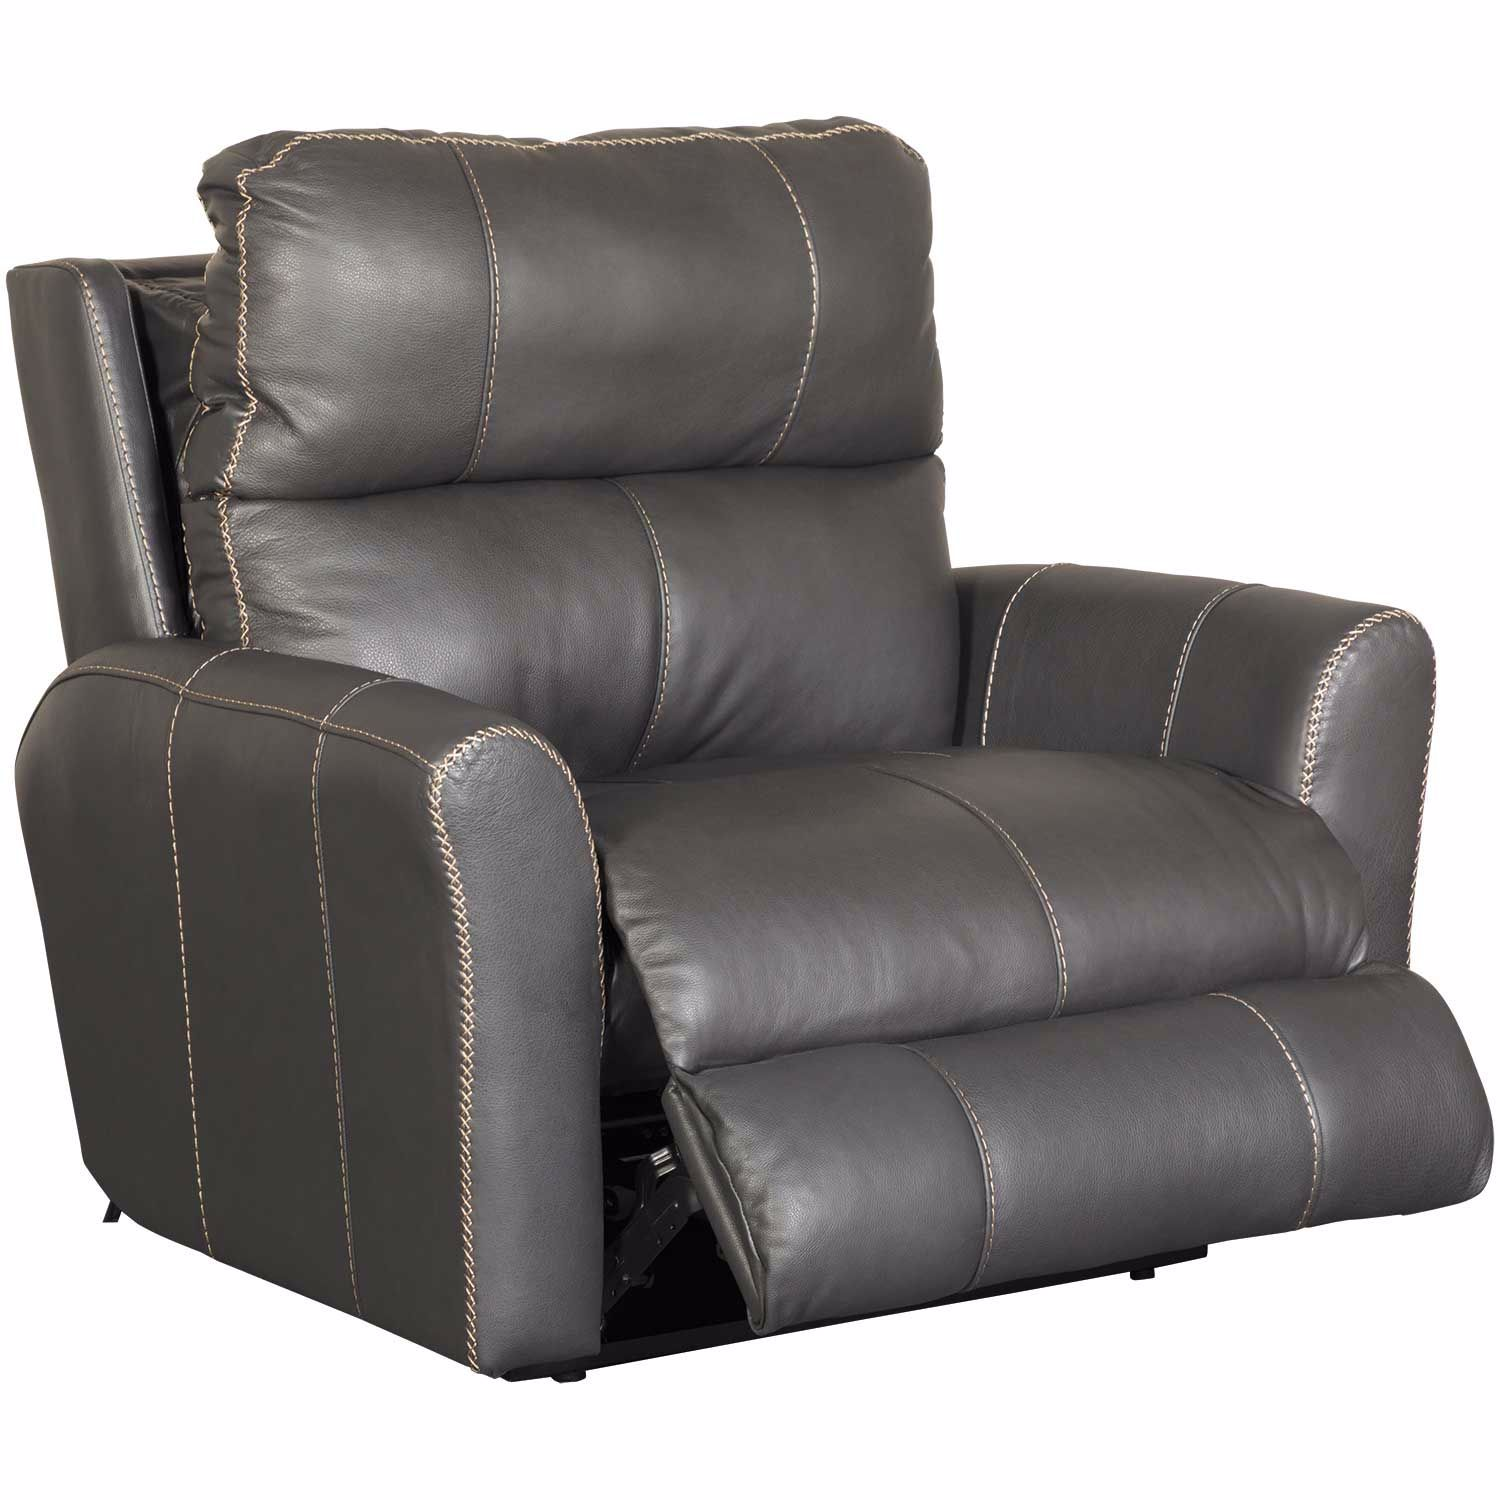 Picture of Italian Leather Power Recliner